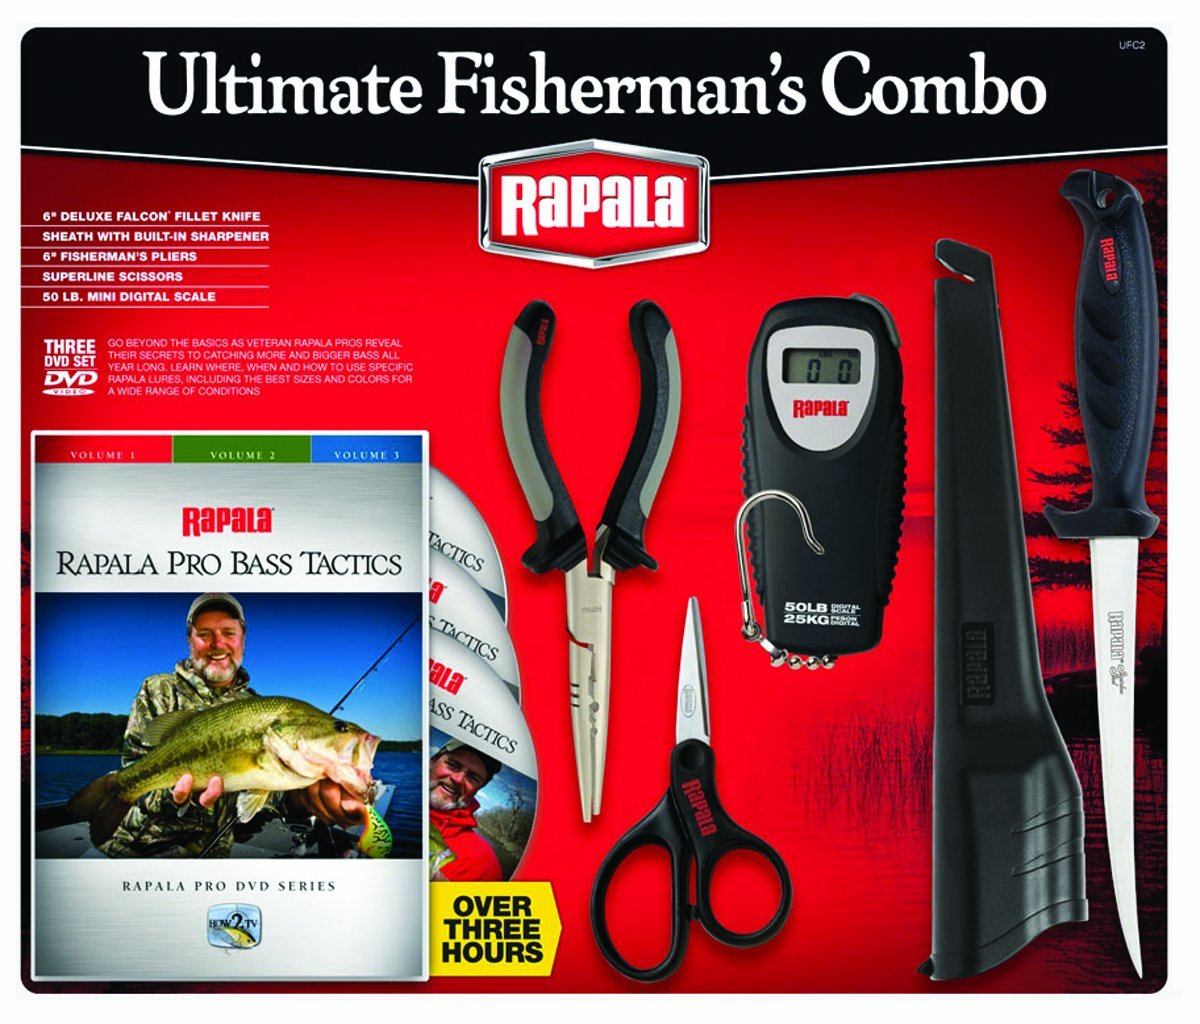 Rapala Ultimate Fisherman Combo with 6-Inch Fillet Knife, Scissors, Scale and 6-Inch Plier